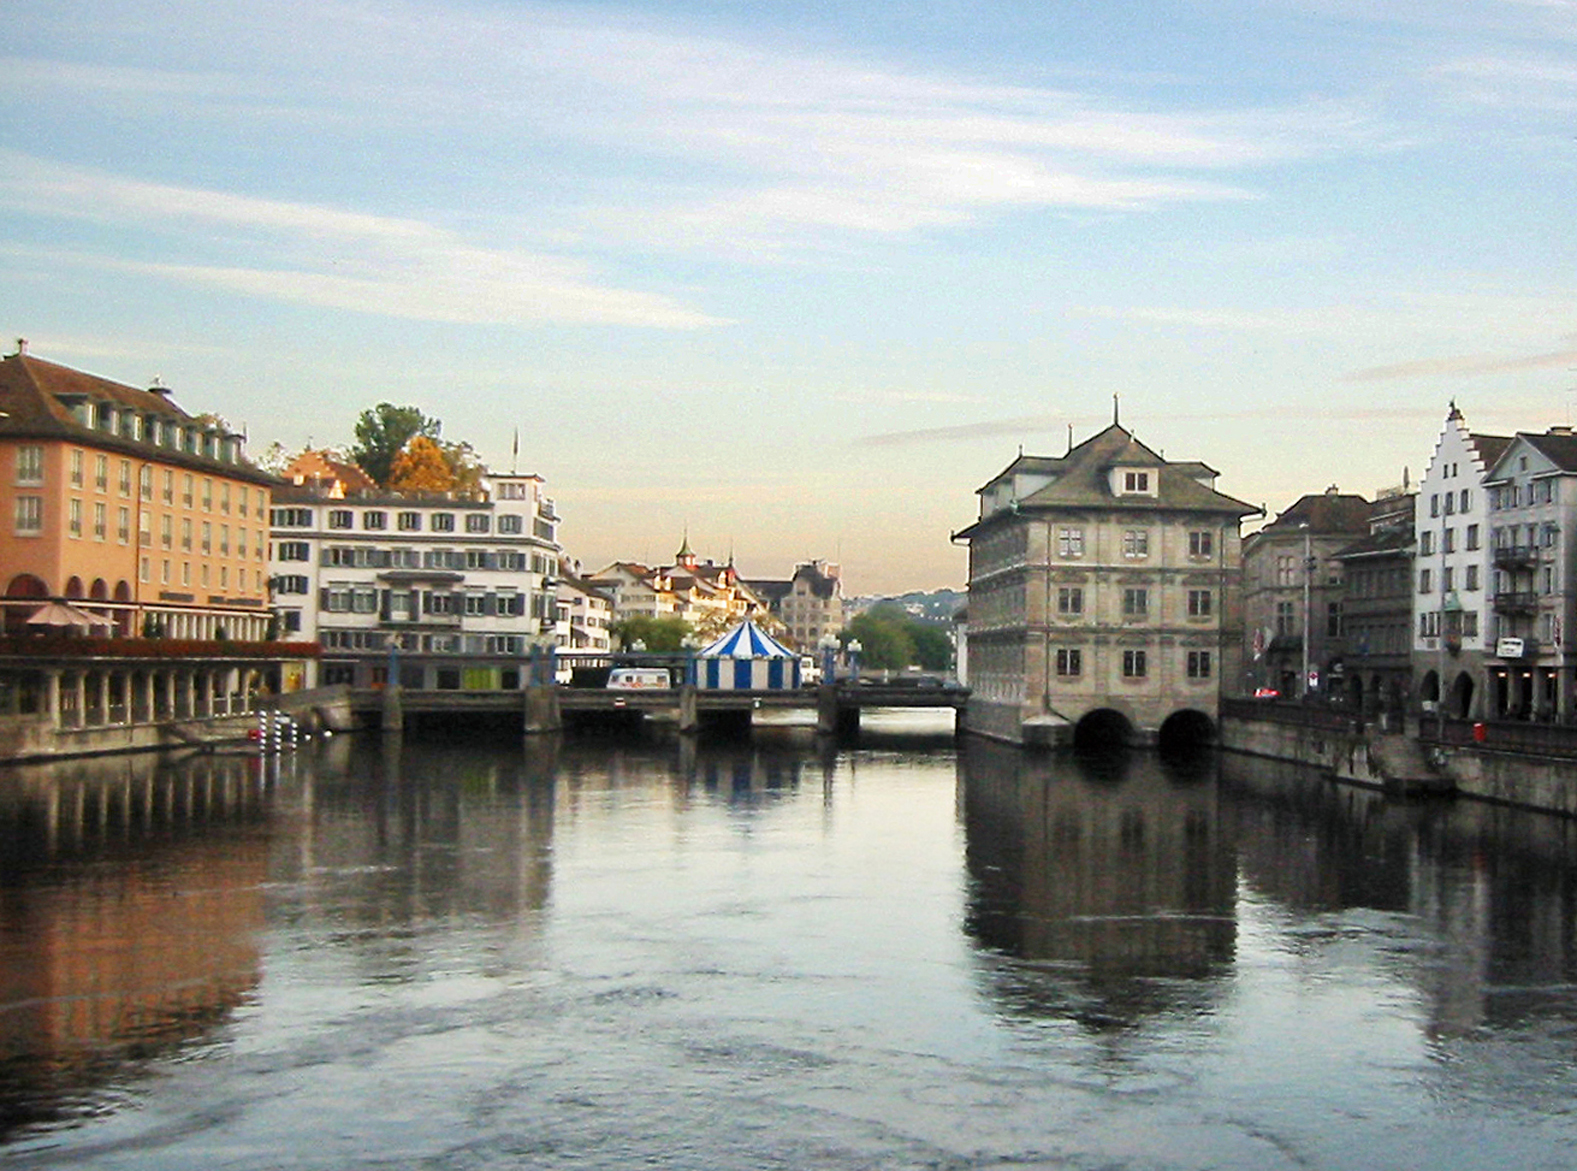 Zürich Town Hall in Limmat River. (Photo by Don Knebel)